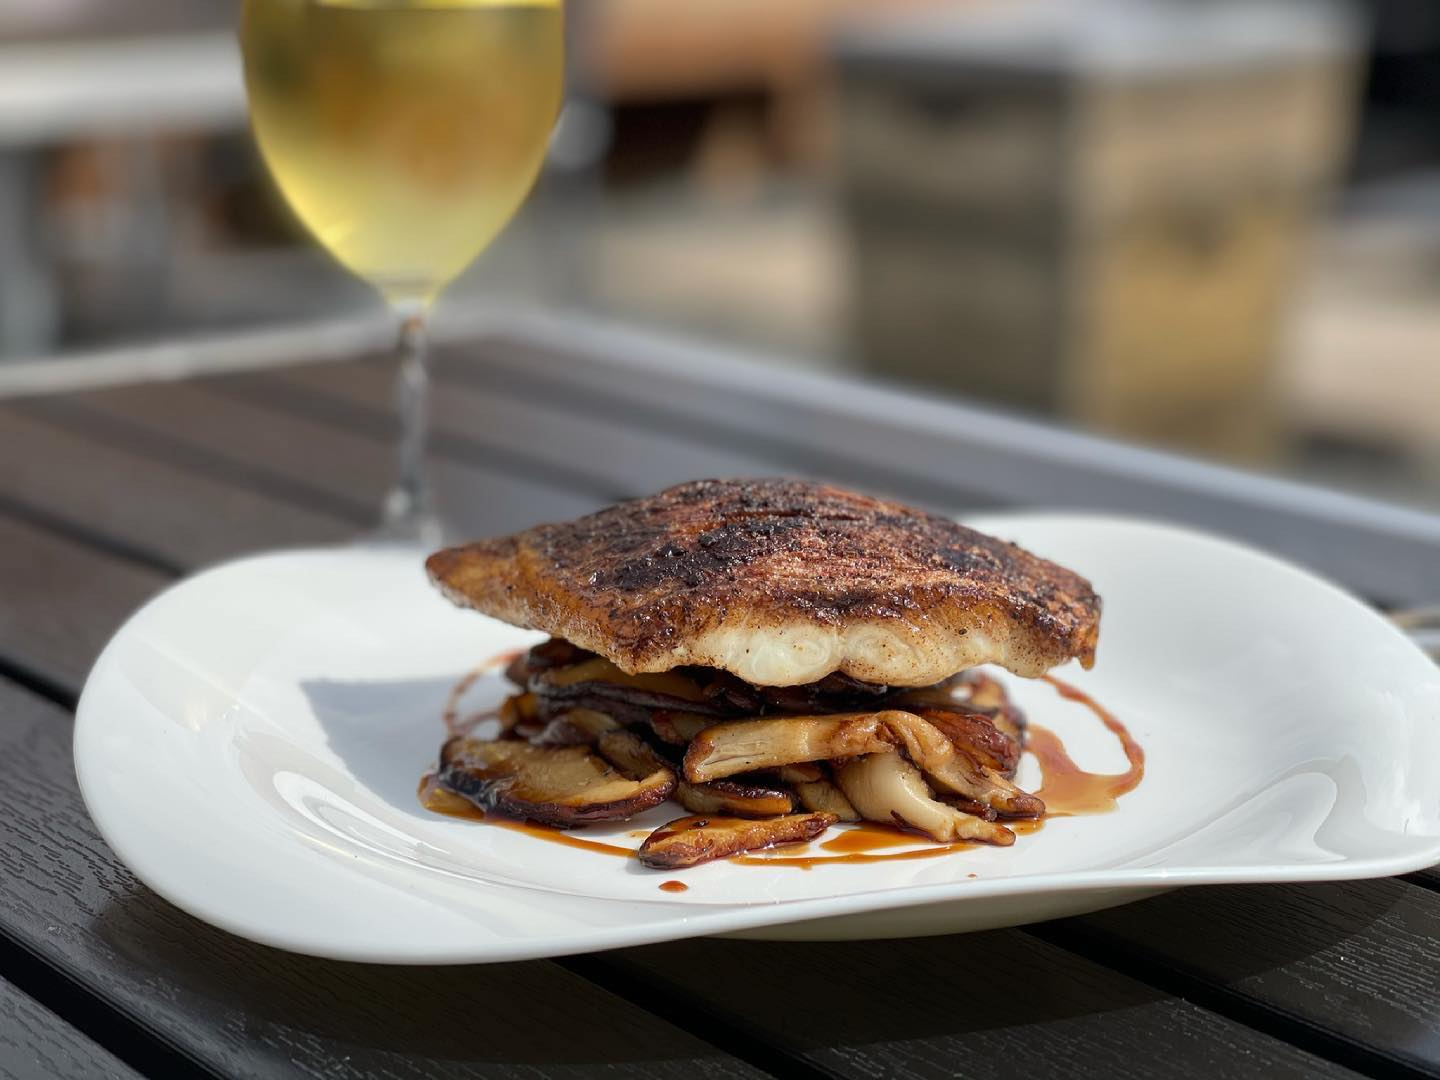 a plank of seared snapper on a bed of sauteed mushrooms